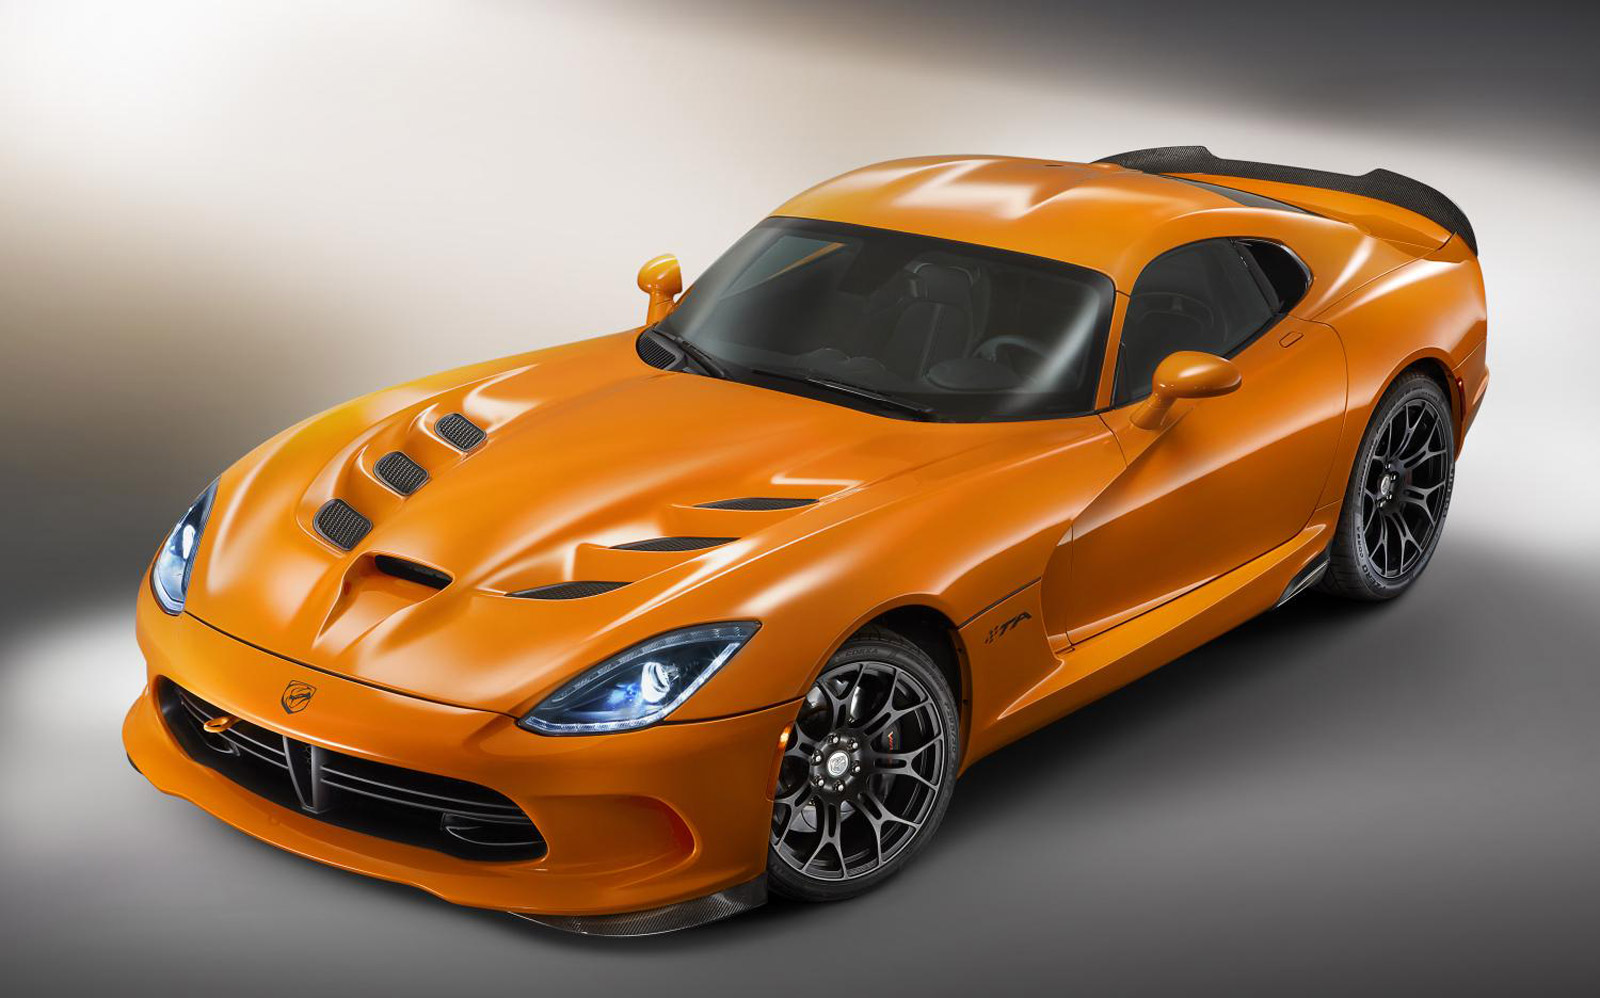 2014 dodge viper_100448040_h 2014 srt viper ta limited to 159 units